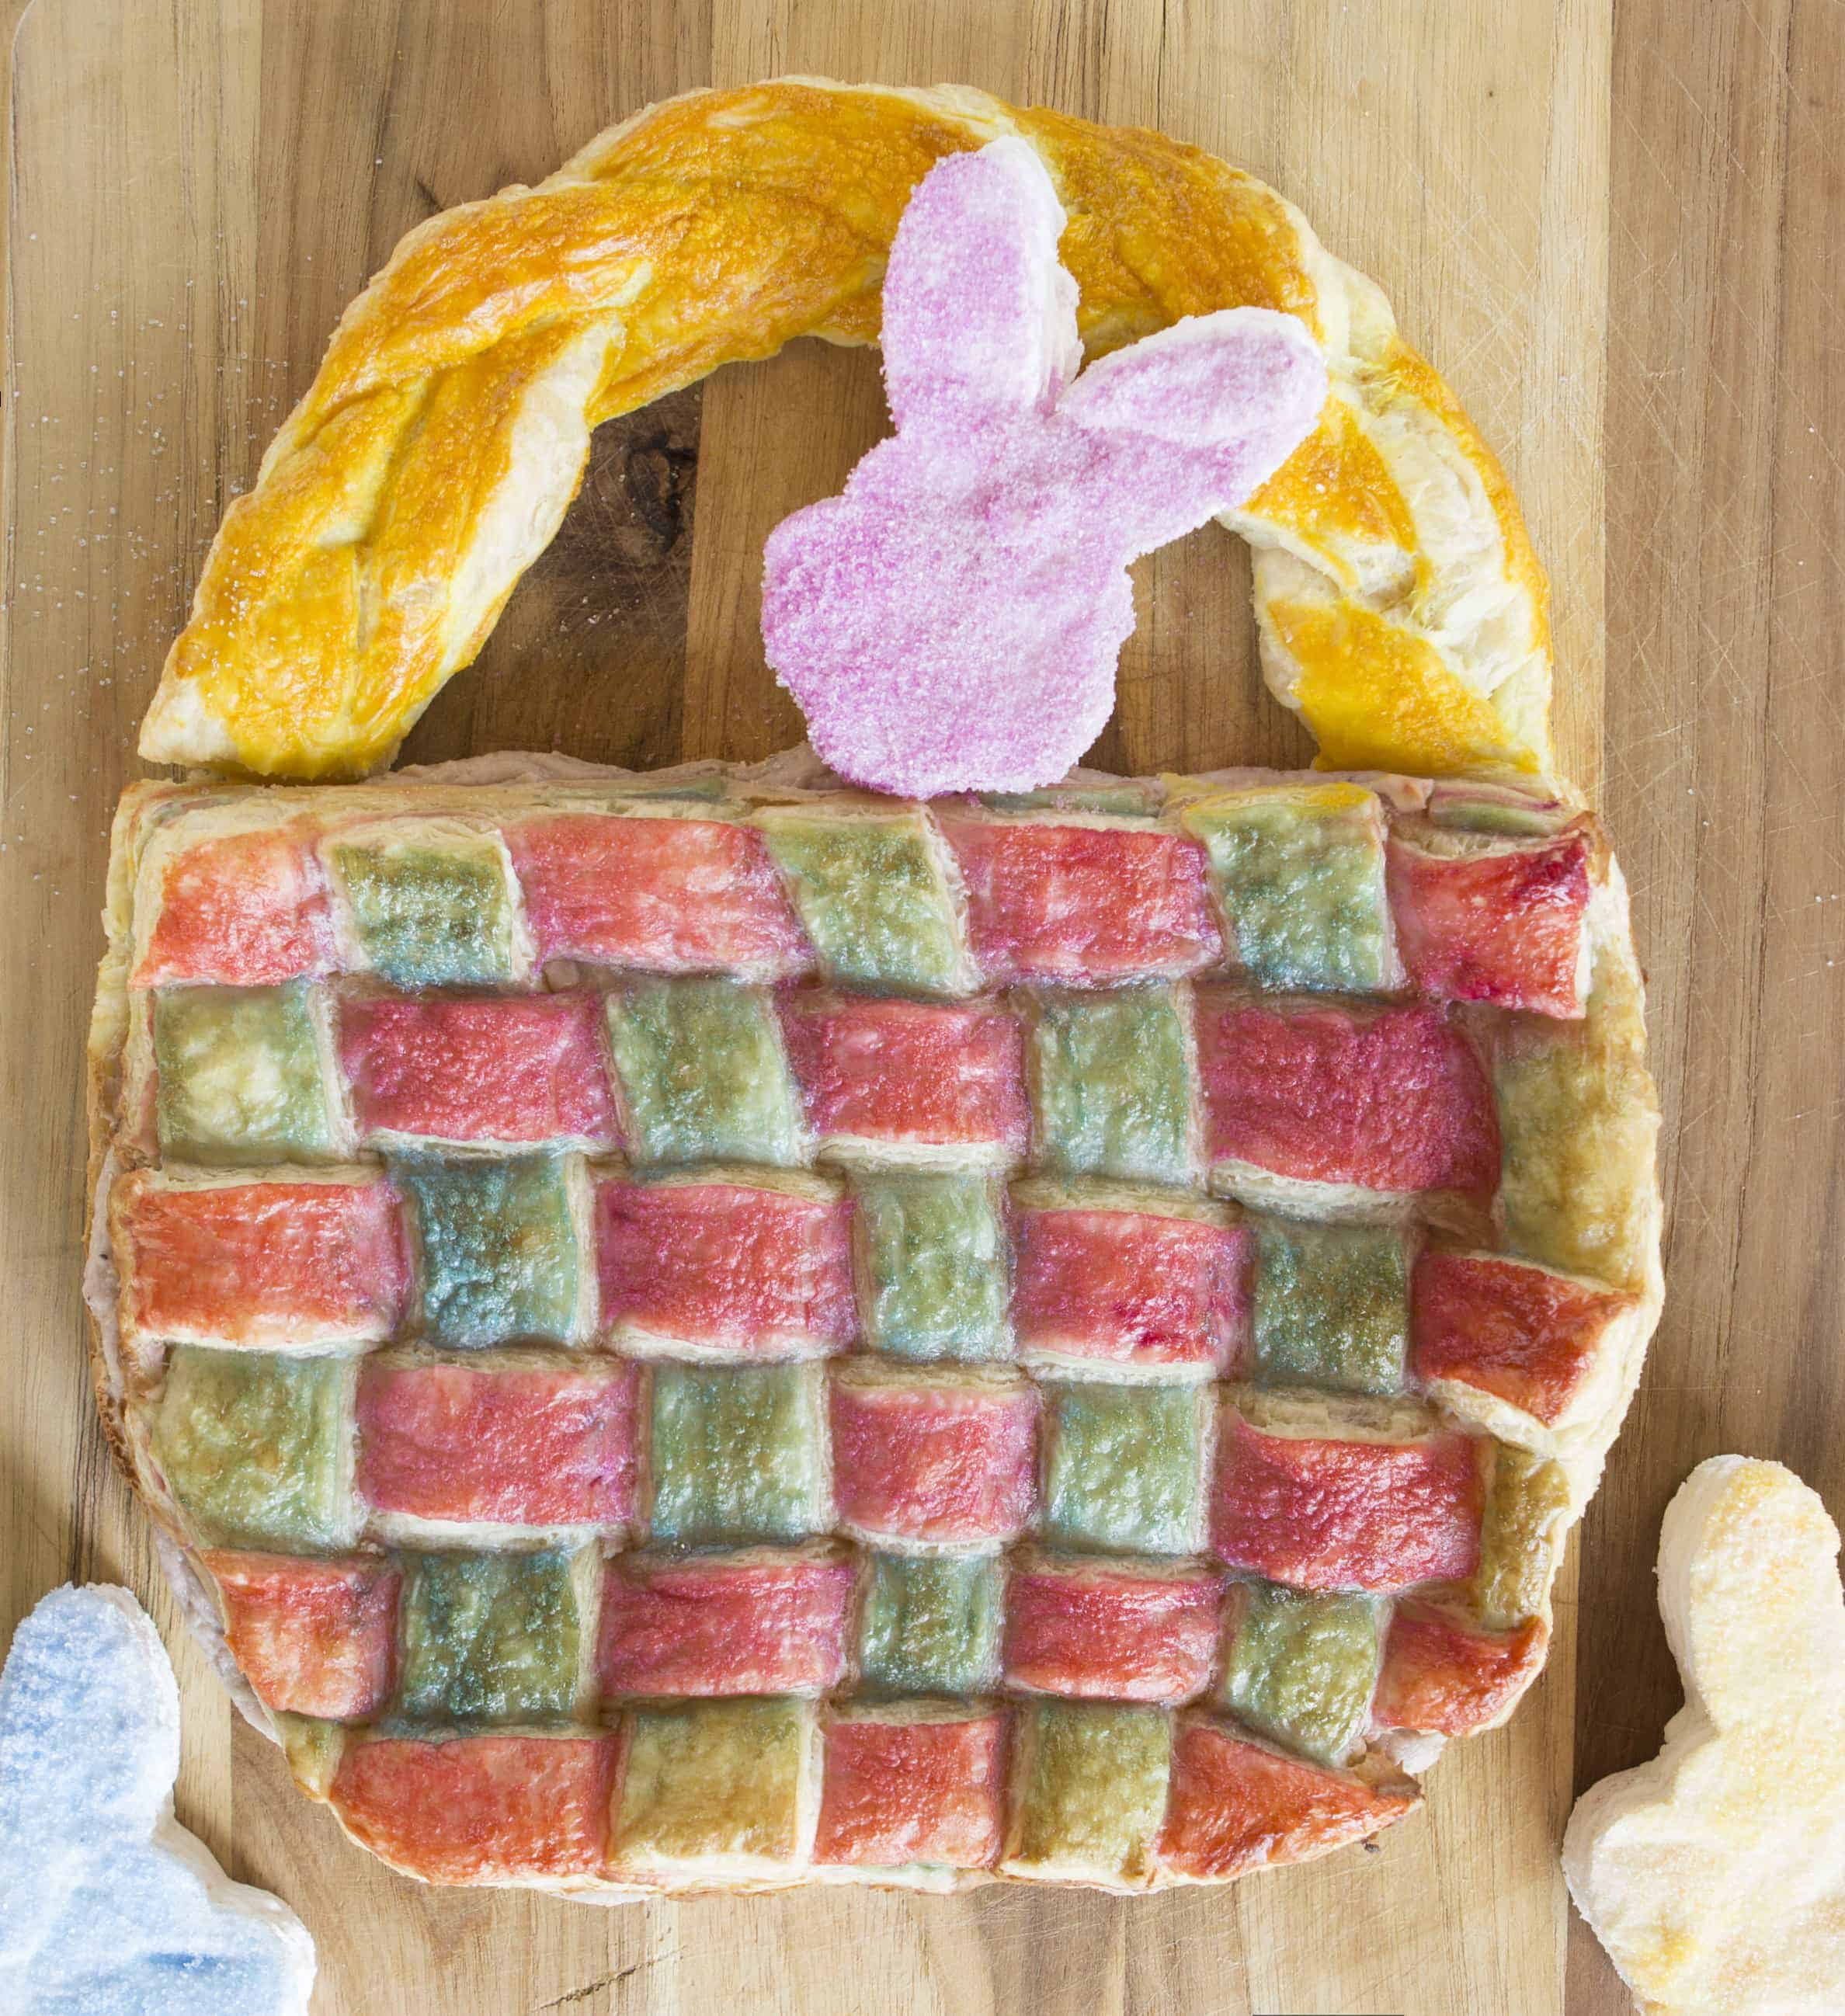 Catch the easy VIDEO on how to do multi-colored pastry lattice!